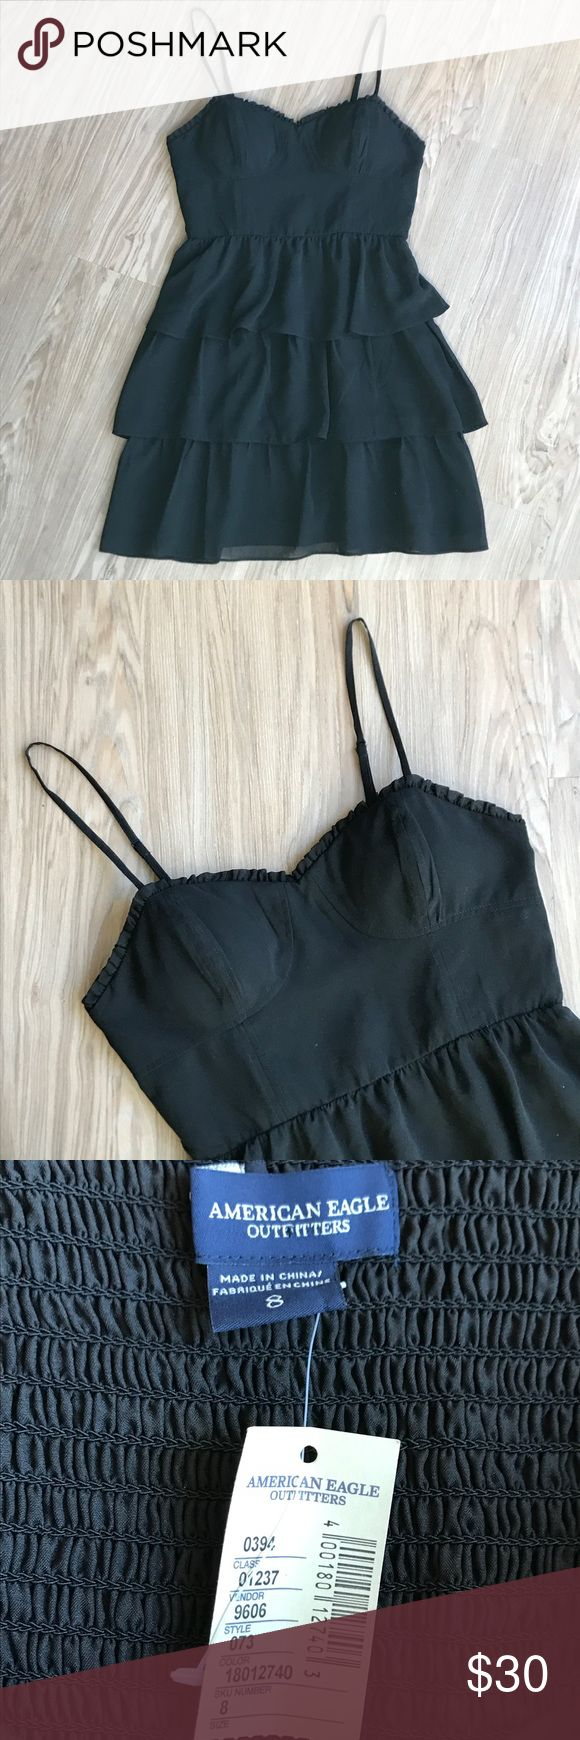 """American Eagle Alluring Little Black Dress NEW SZ8 American Eagle  Little Black Dress Tiered Ruffled Skirt Elastic back Panel Adjustable Spaghetti Straps  Lightly Padded Shelf Bra Fitted Bodice + Side Boning Lined 100% Polyester  Brand new with tags  Size 8 Flat Lay Measurement: 15"""" Bustline   13"""" high waist   32"""" length + 3"""" strap drop.  Please keep in mind that there is a back Panel of full stretch. True to size.  Great for holiday parties or cocktail hour.  Super cute with with fantastic…"""